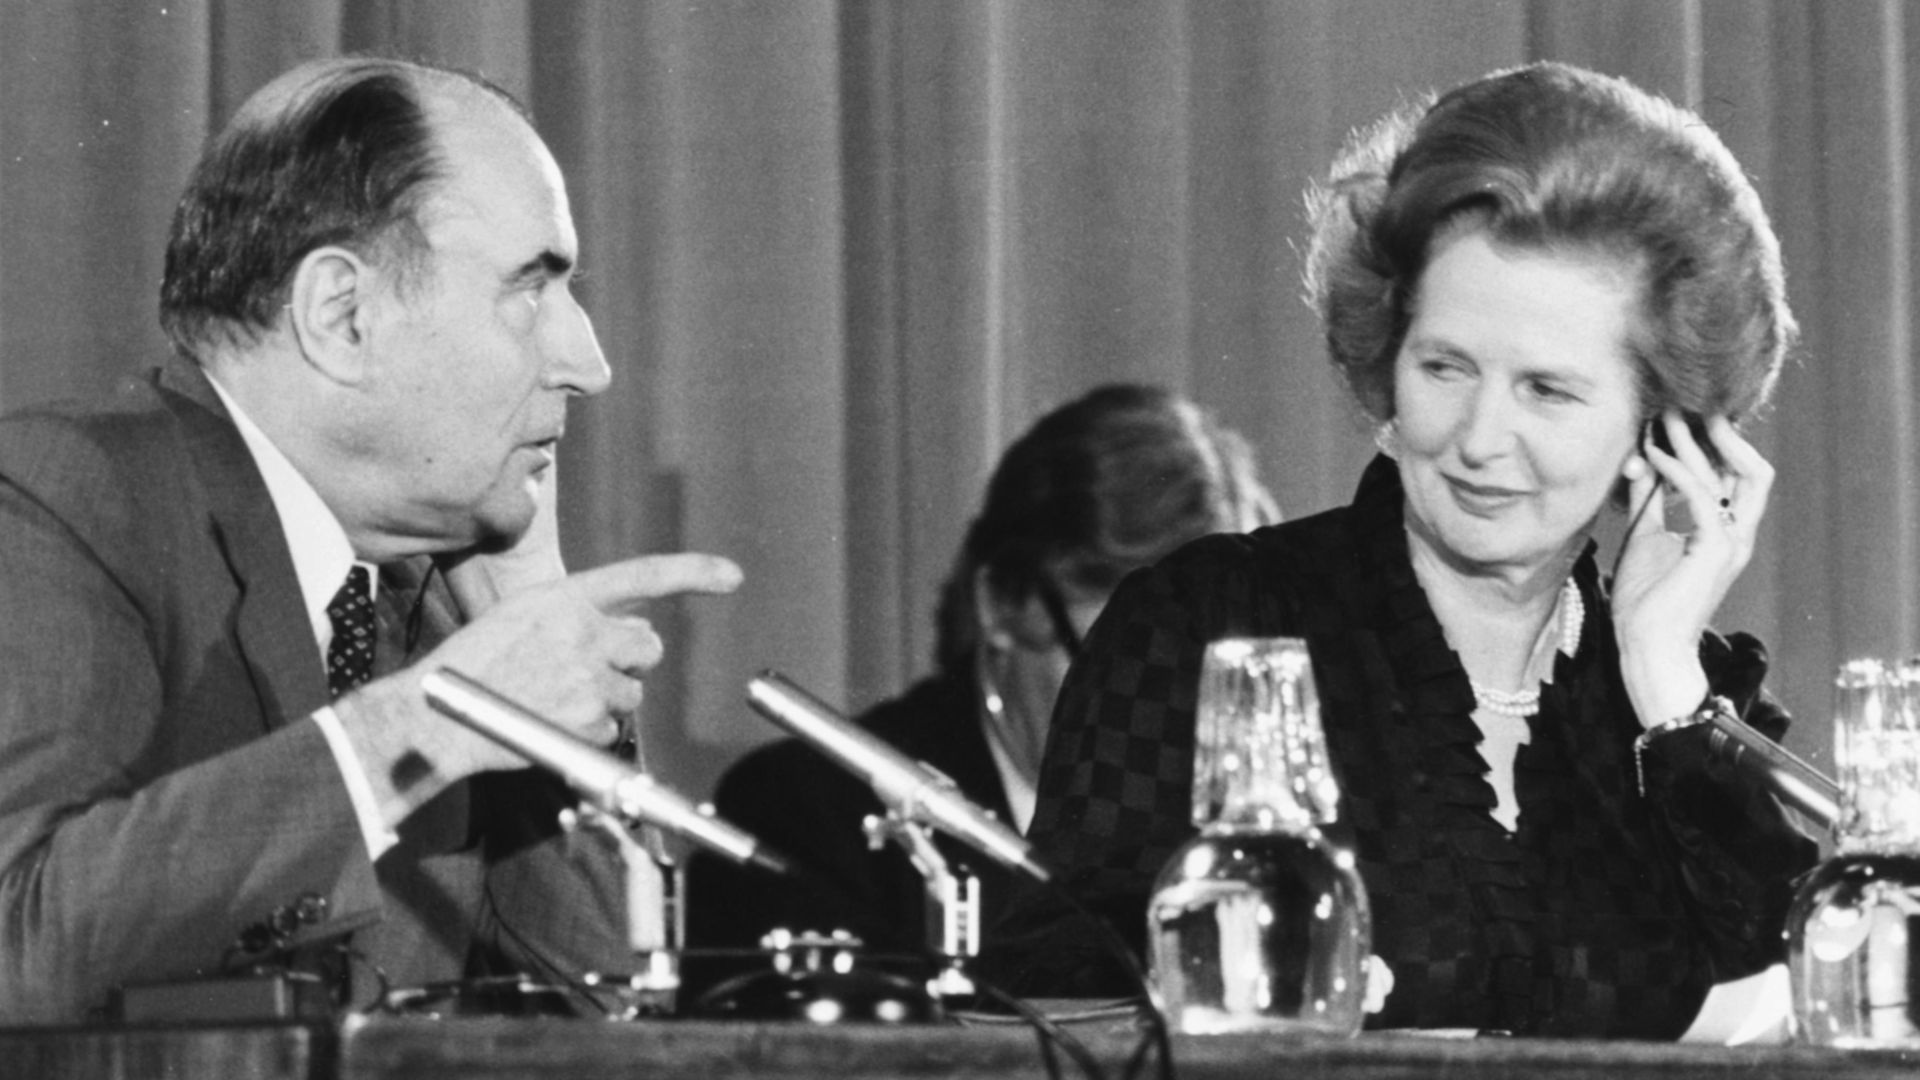 Margaret Thatcher and François Mitterrand at a press conference to talk about their countries' relationship, in September 1981 - Credit: Getty Images